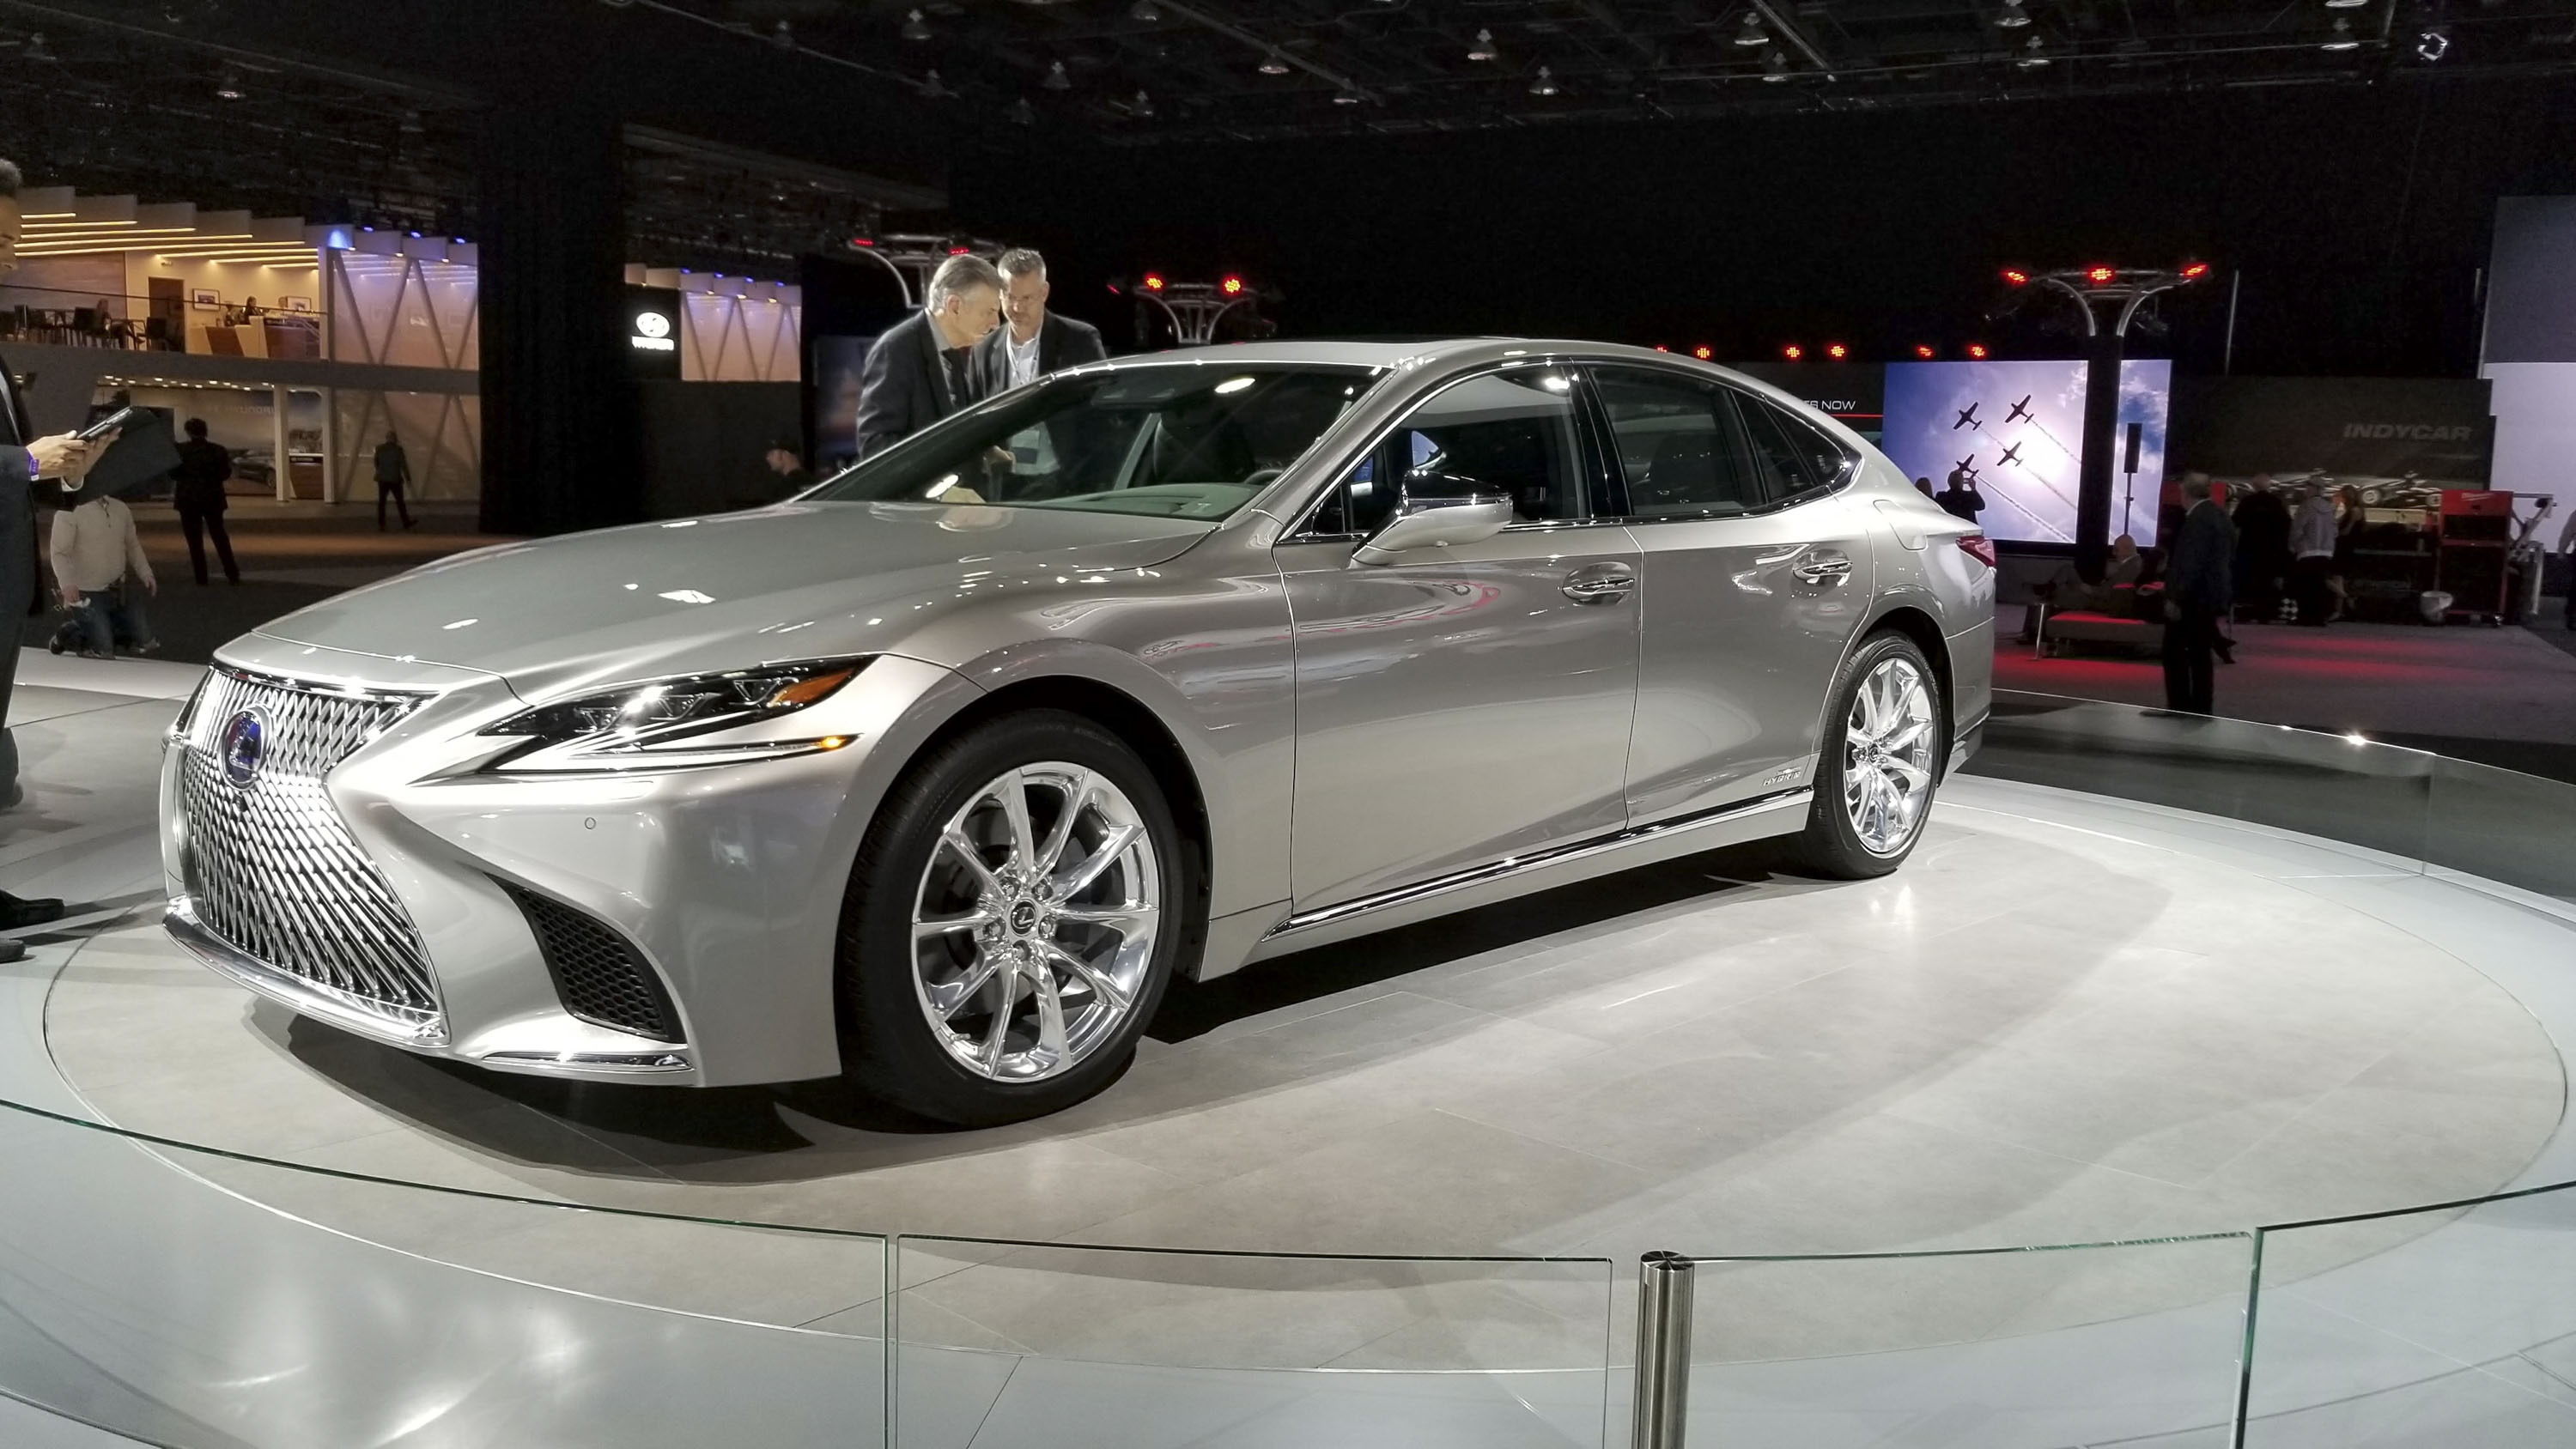 2018 Lexus LS Pricing Unveiled In Detroit Significantly More Affordable Than Mercedes SClass